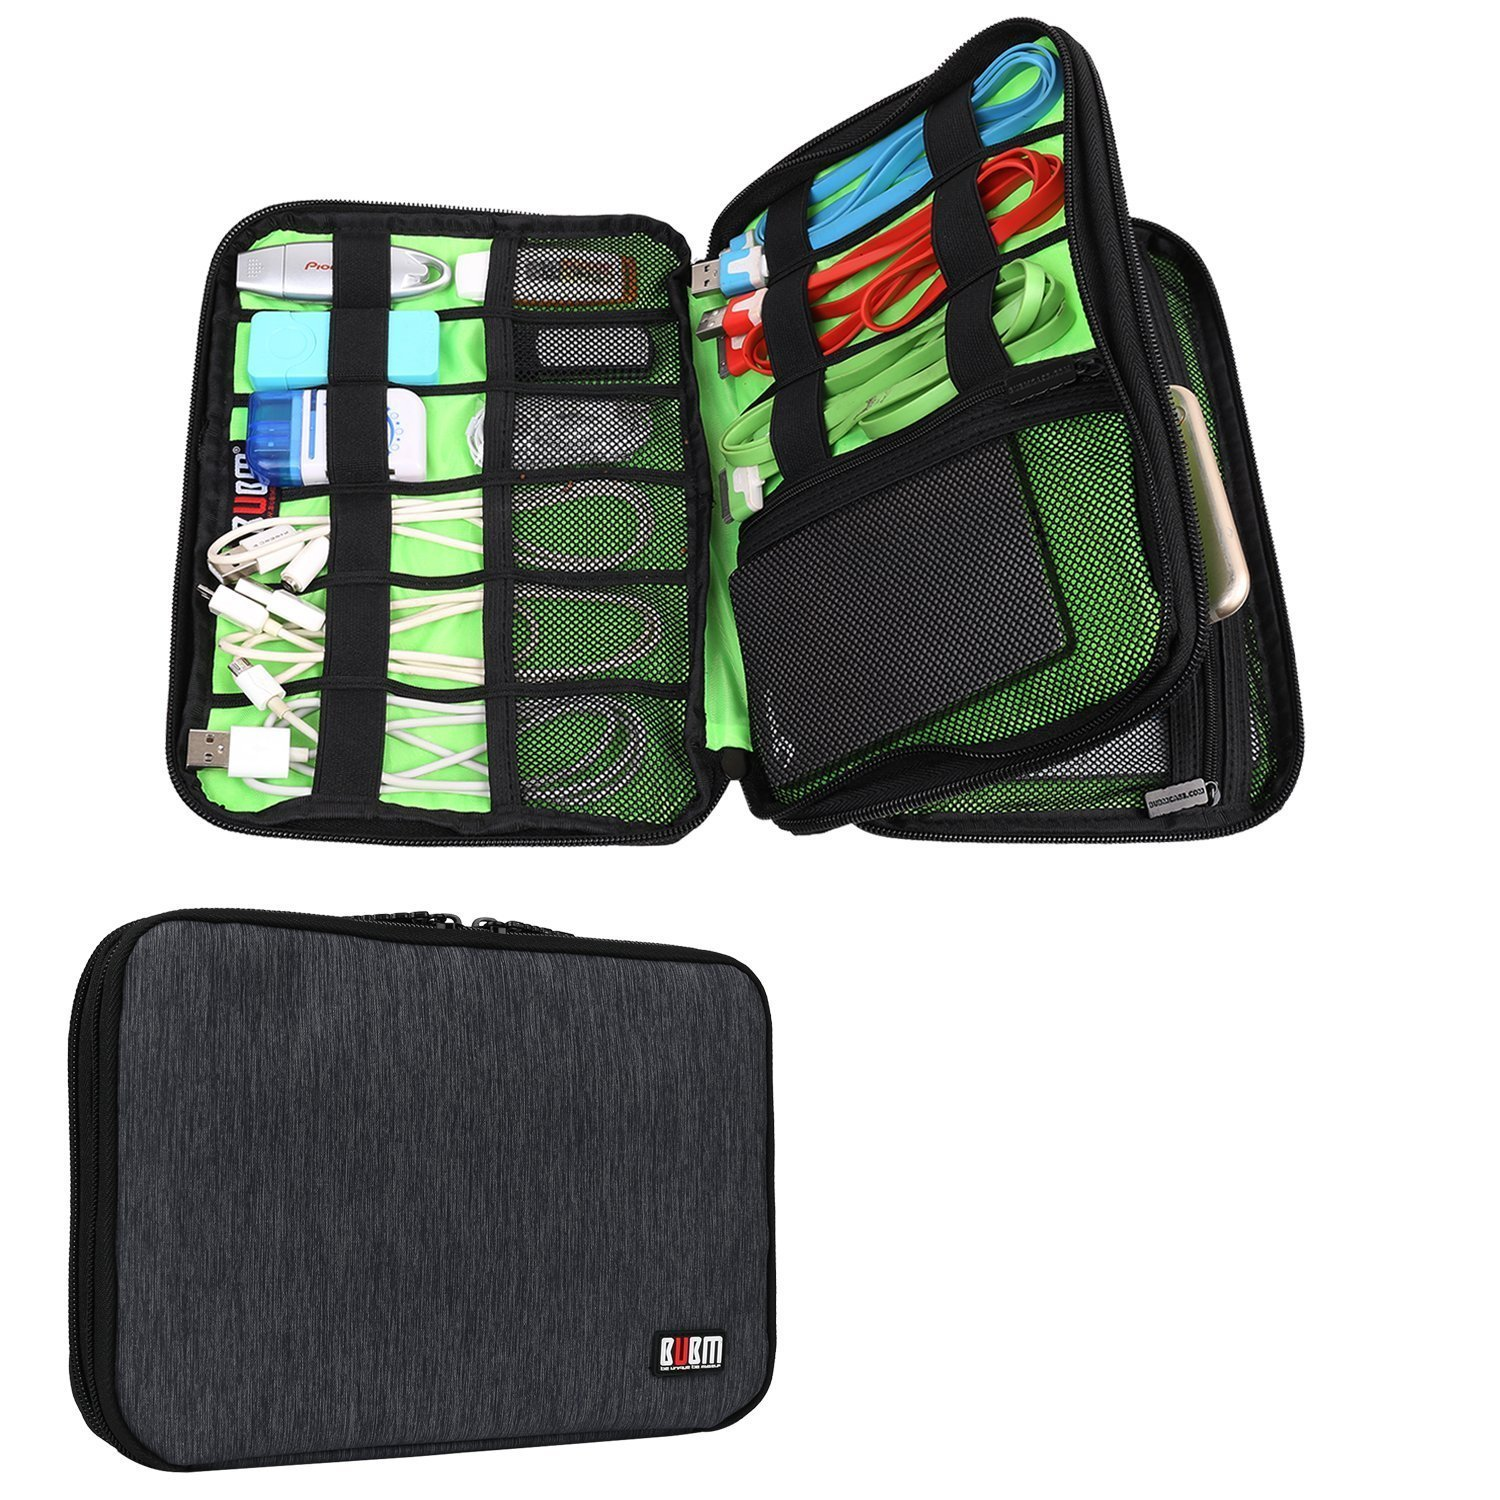 Universal Electronics Accessories Case Various USB, Phone, Charger, Cable Organizer Travel Organizer Cosmetic Bag- Double Layer, Black